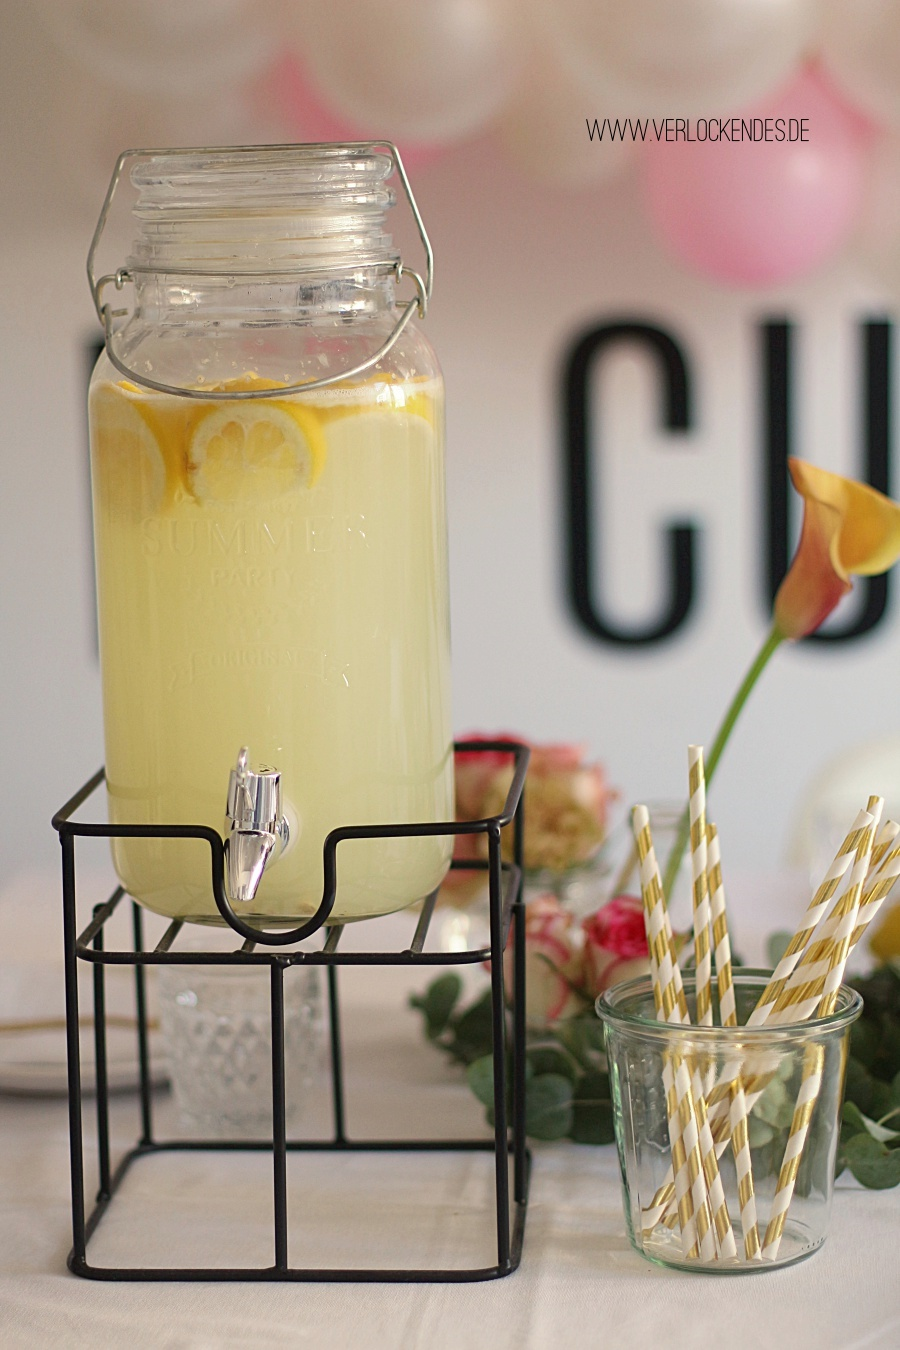 Lemon Vanilla Lemonade homemade